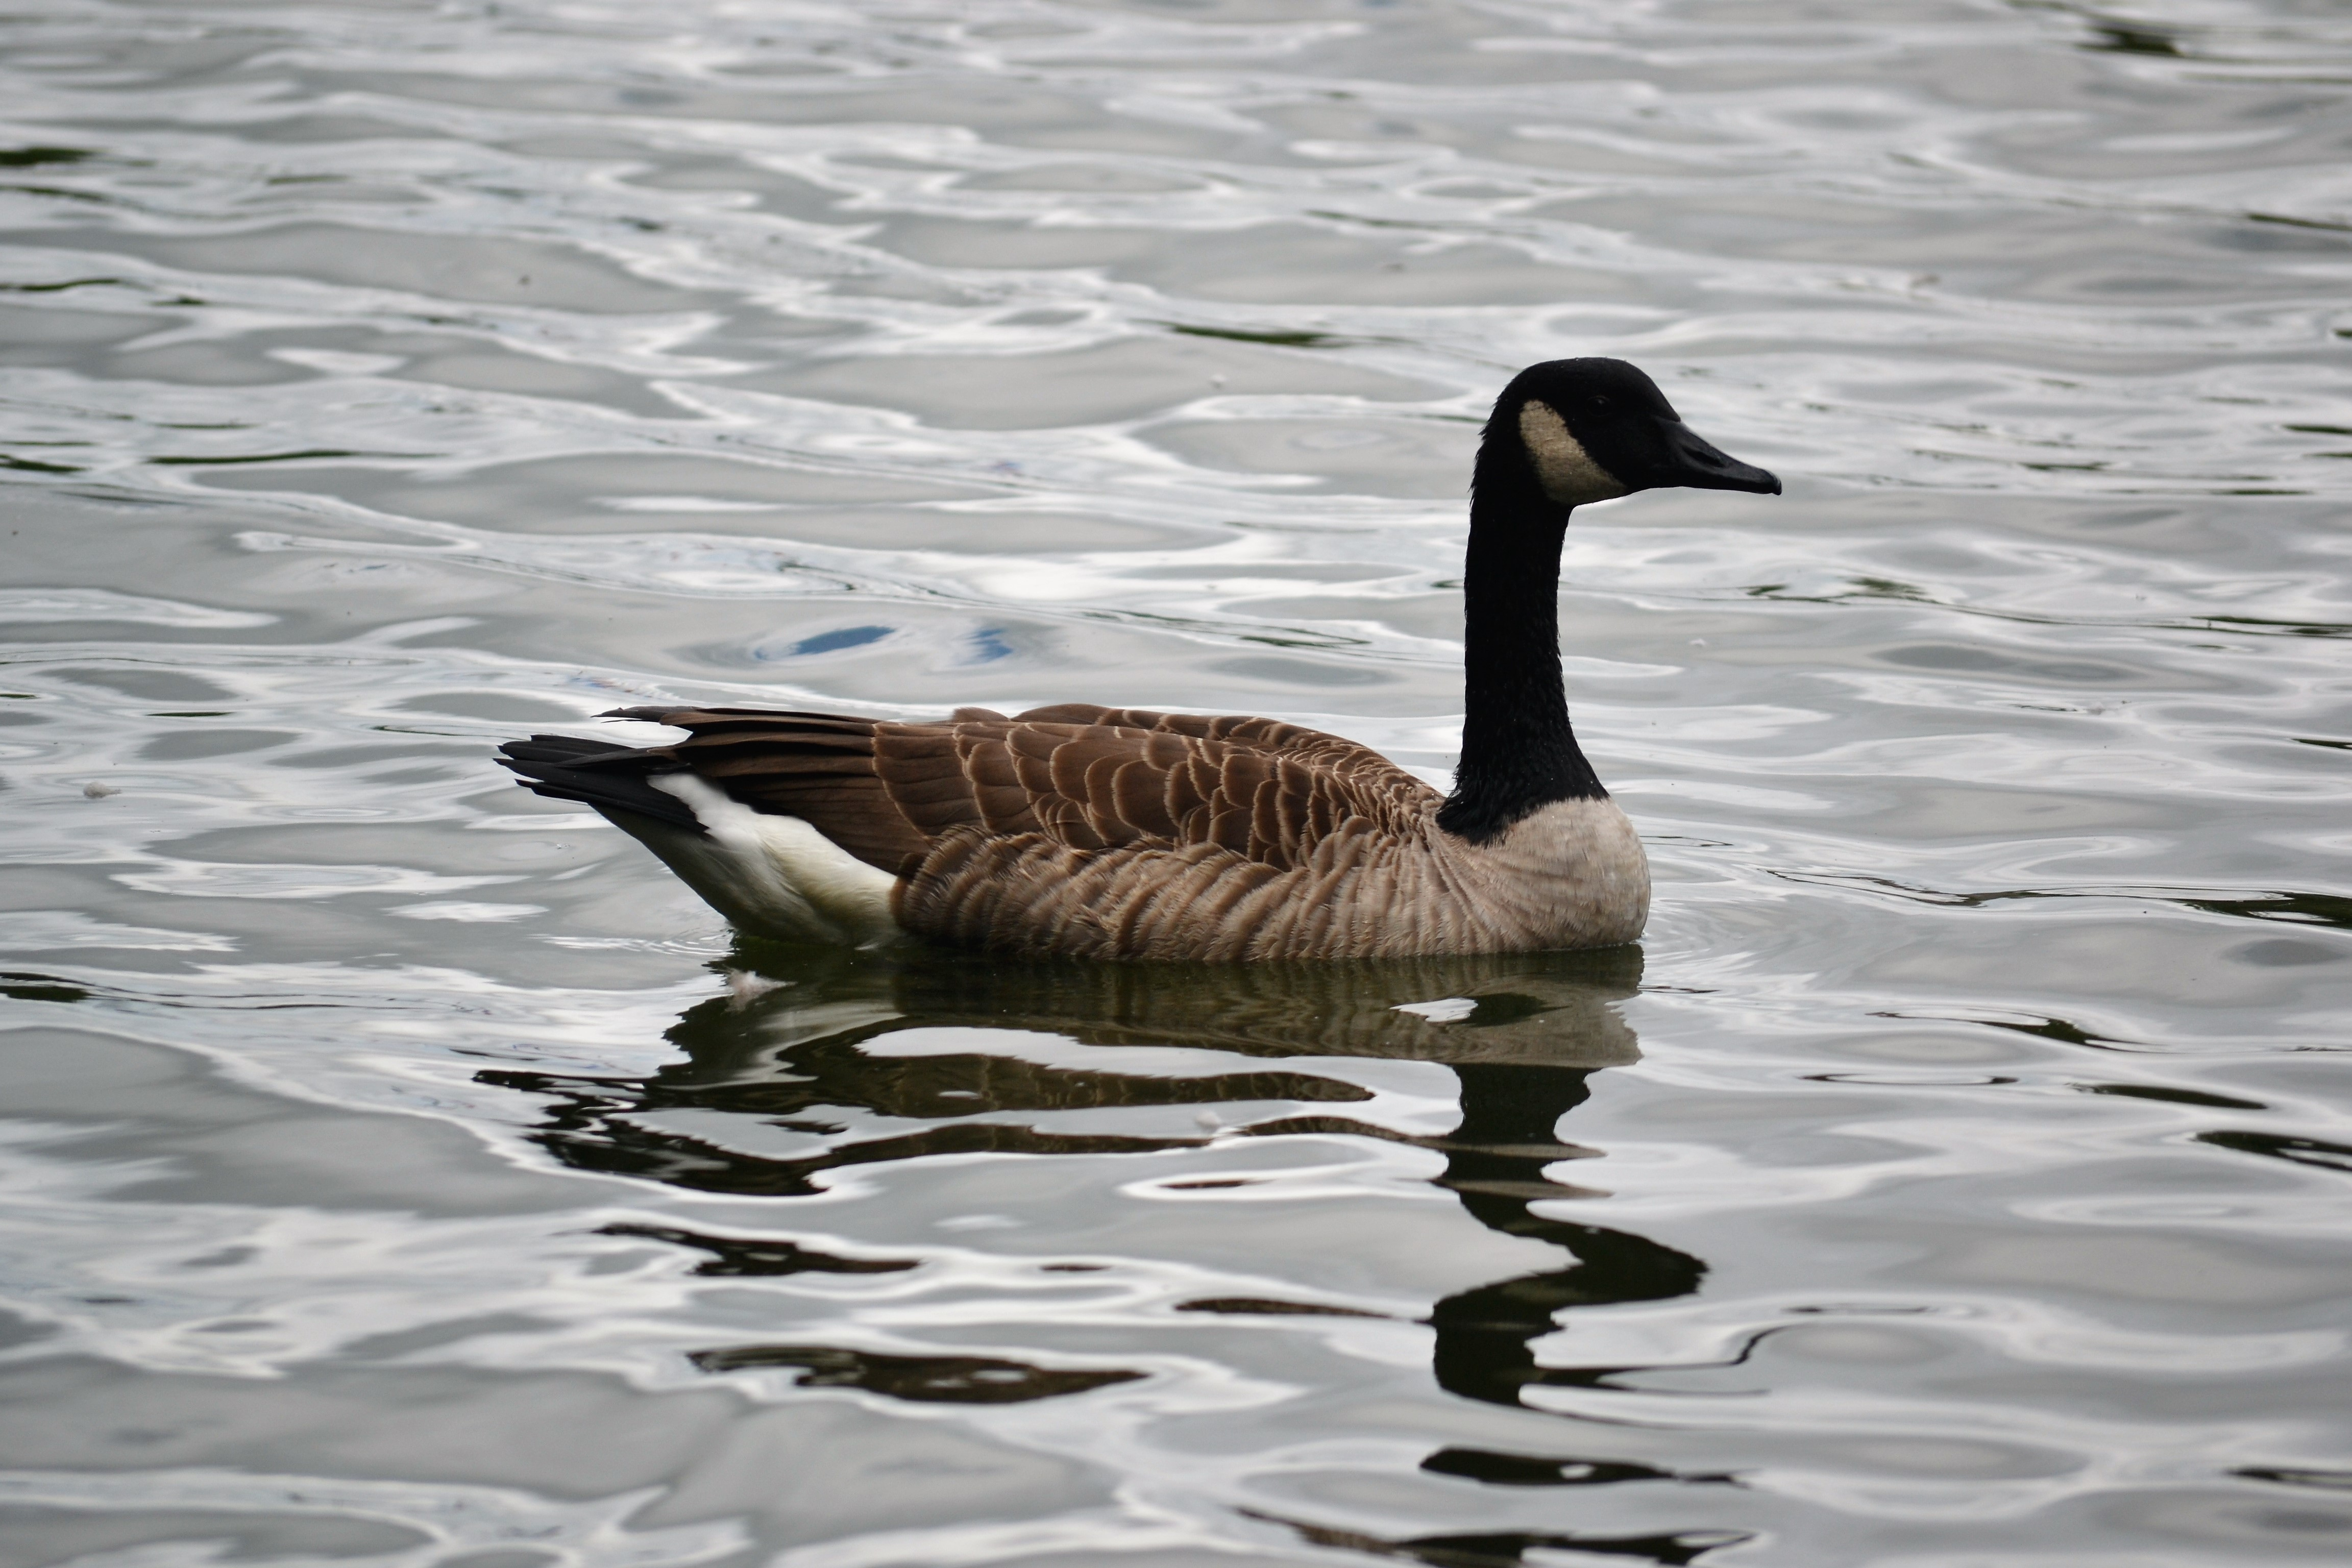 Ocean Pines General Manager Defends Geese Decision